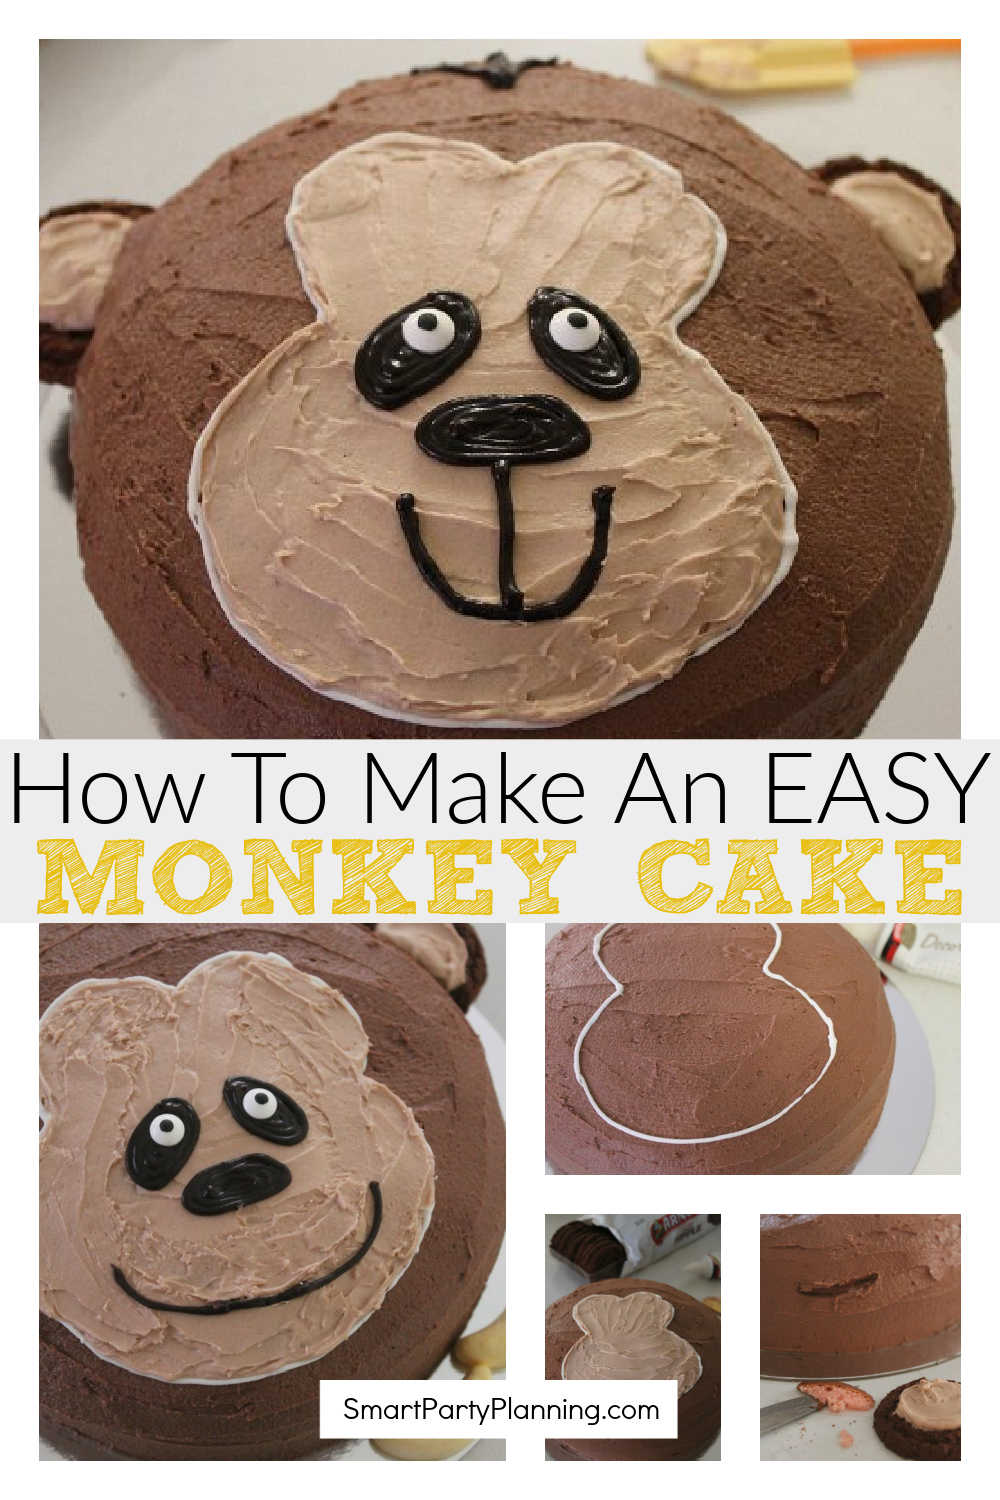 How to make an easy monkey cake